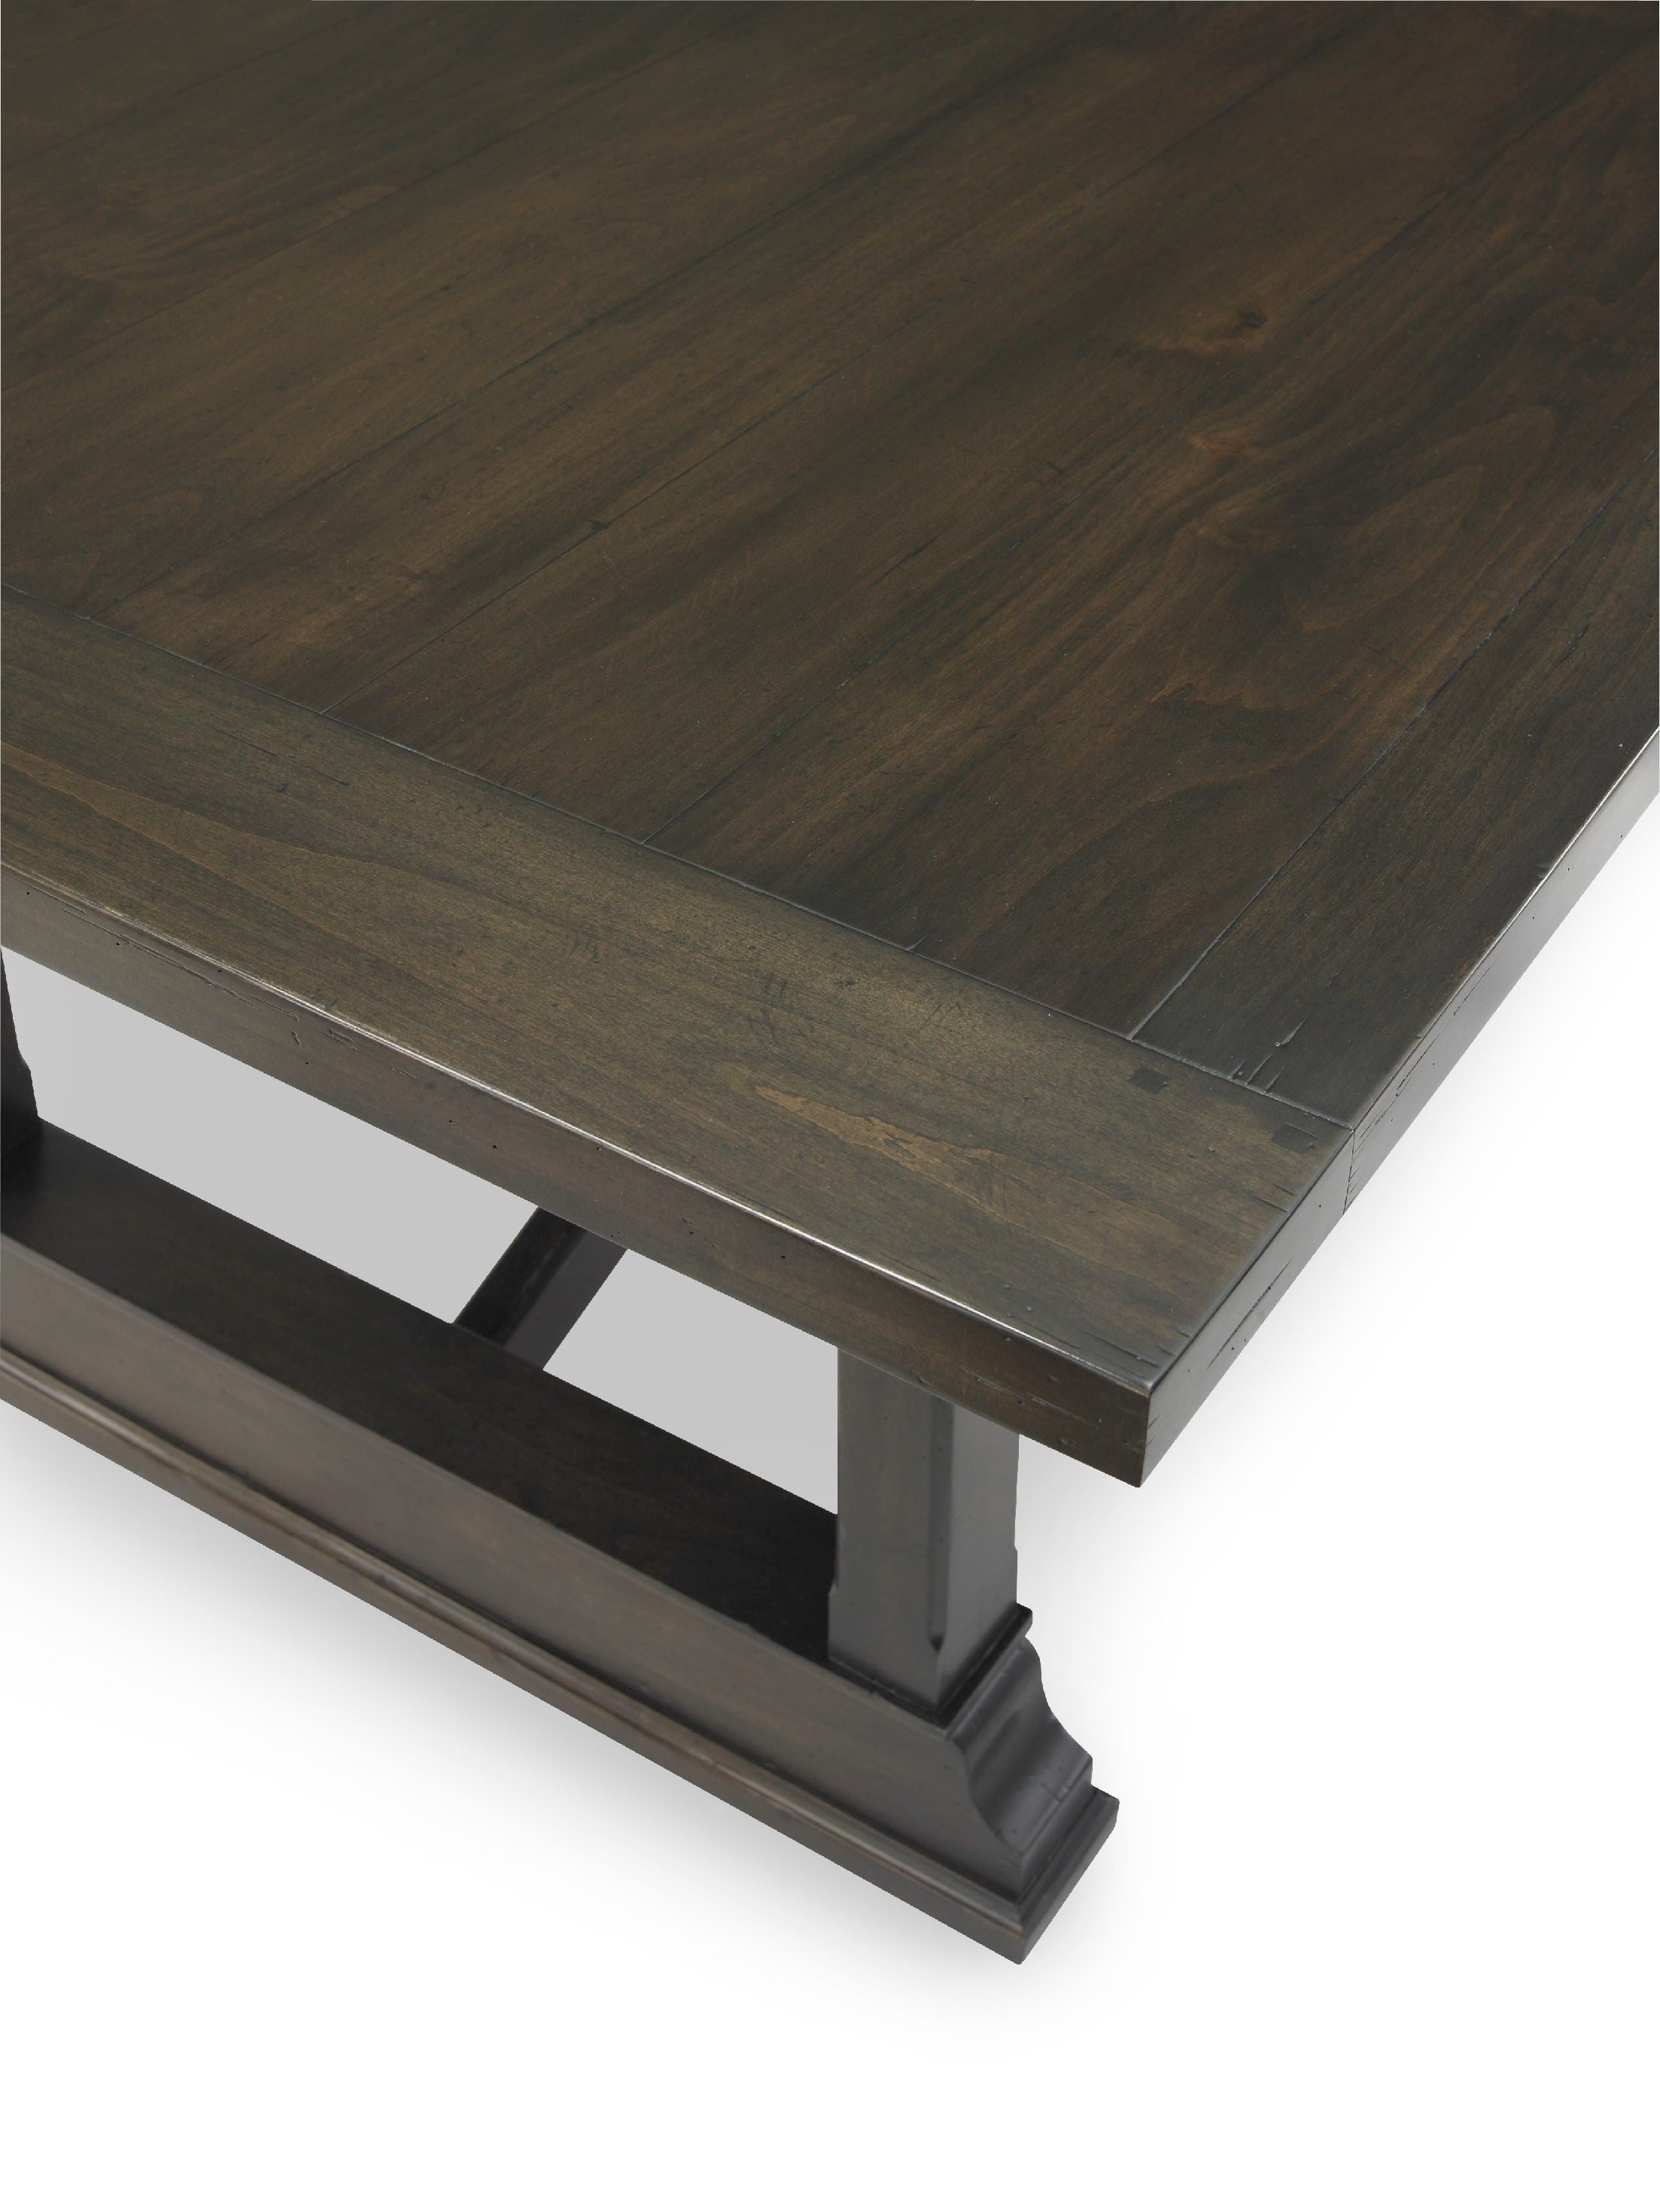 Chaddock Oak Gate Farm Table CE0891